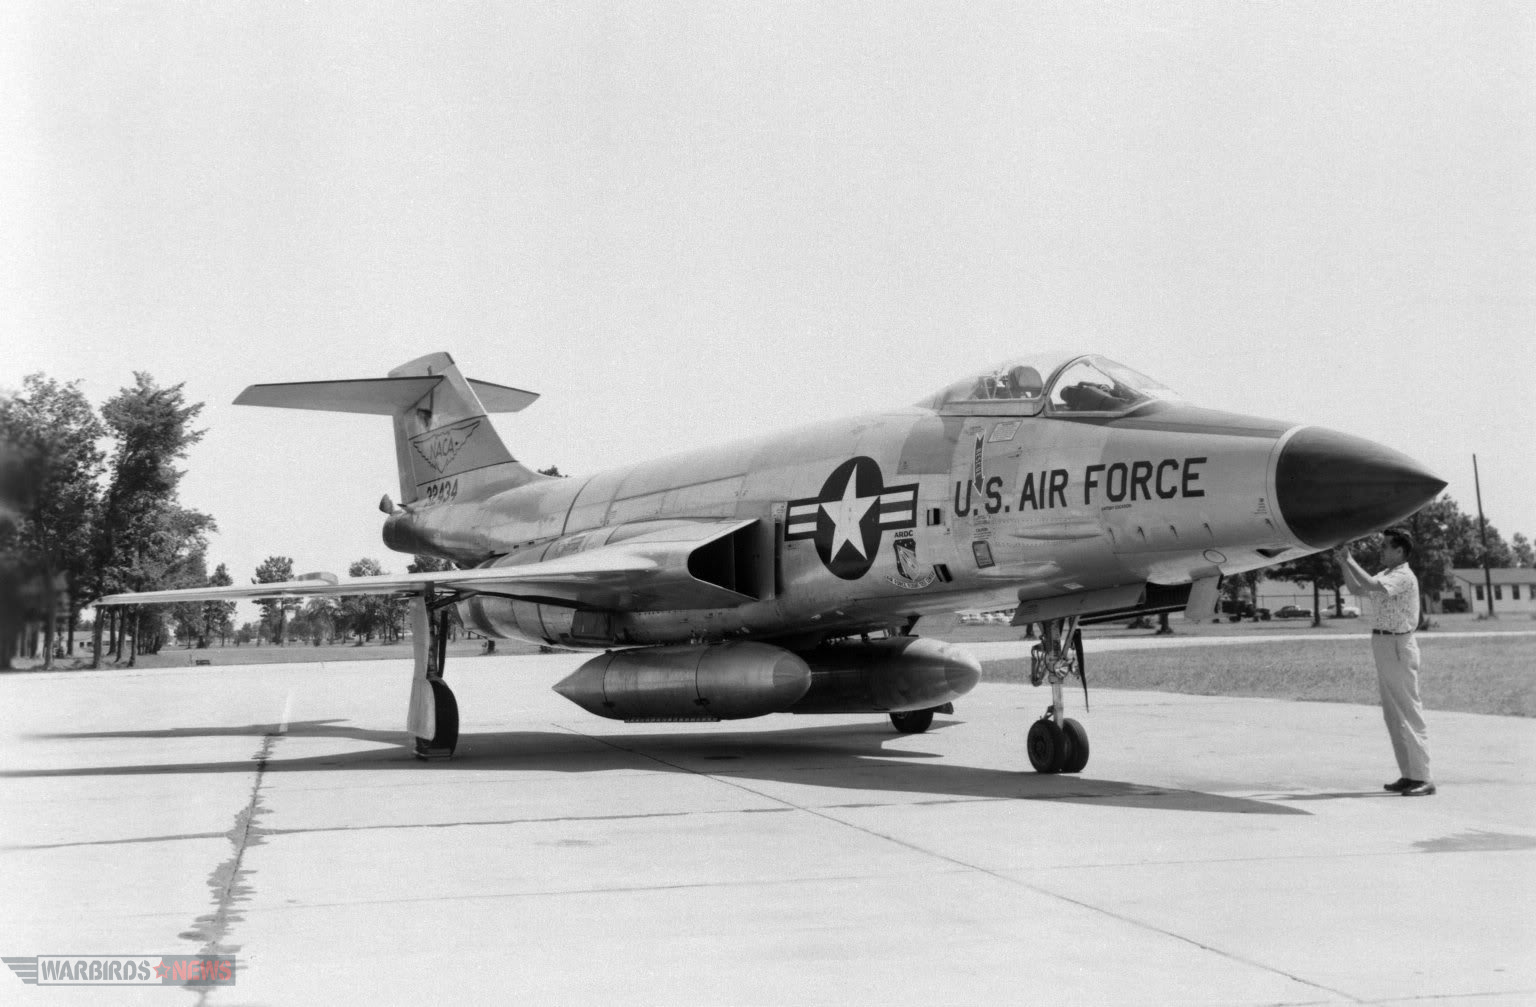 F-101 Voodoo)RObert F. Dorr Collection9